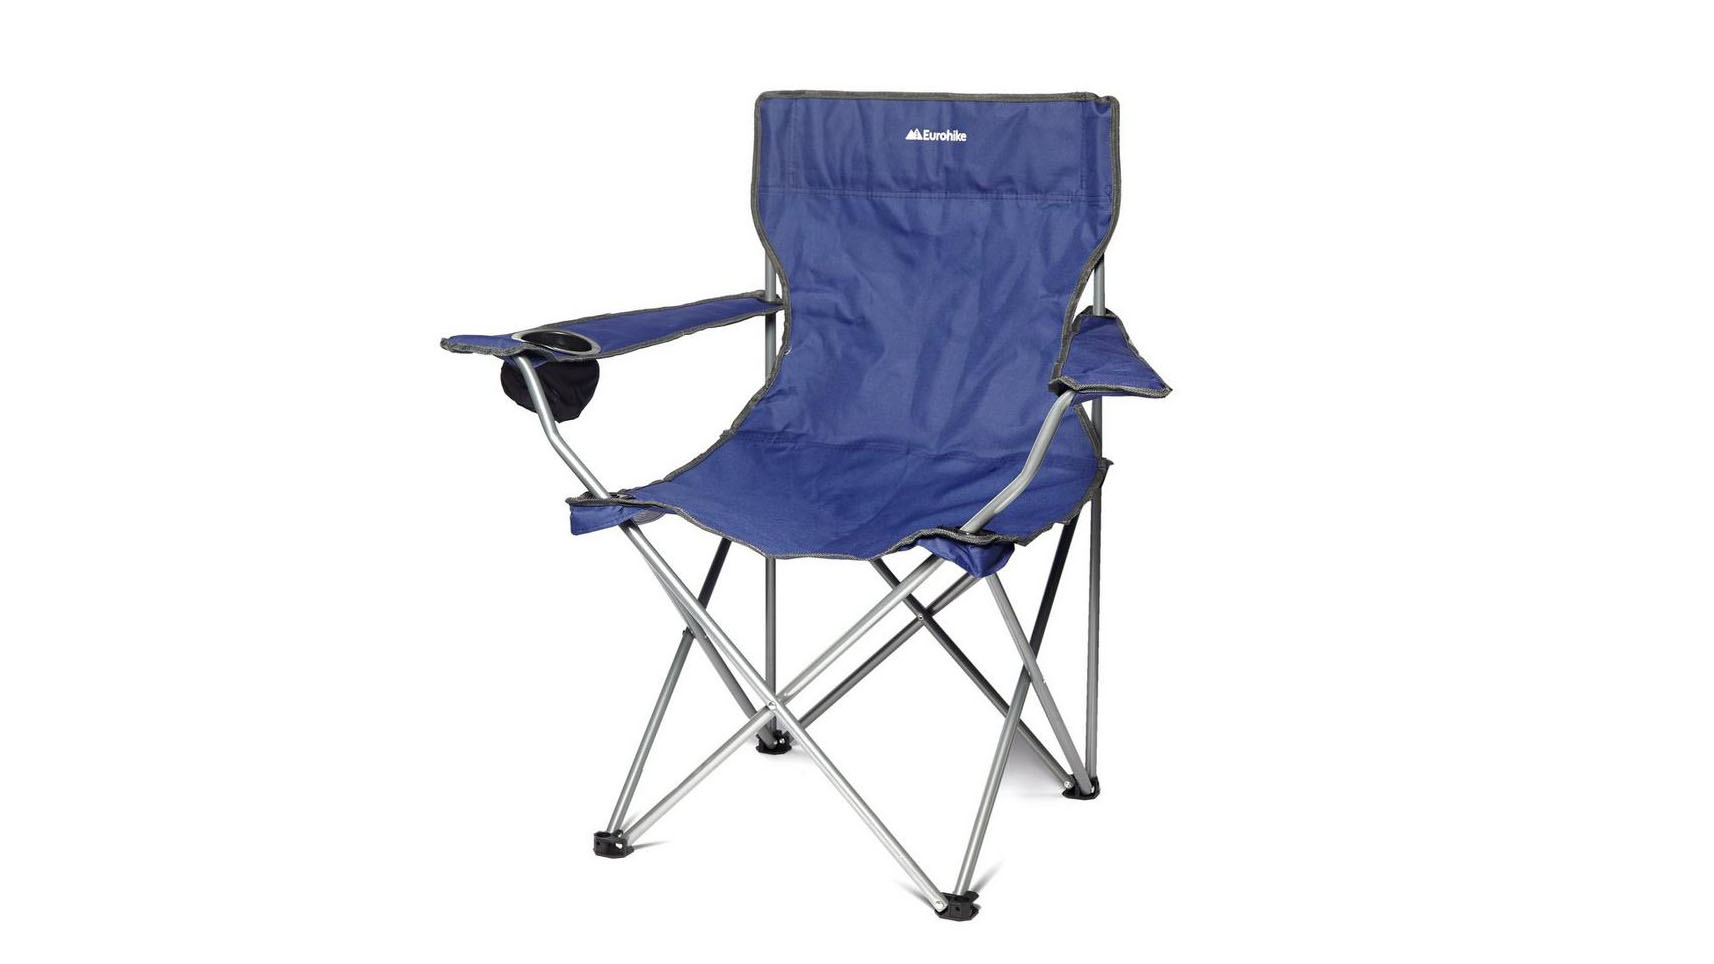 Best Camping Chairs The Best Chairs For Summer Camping